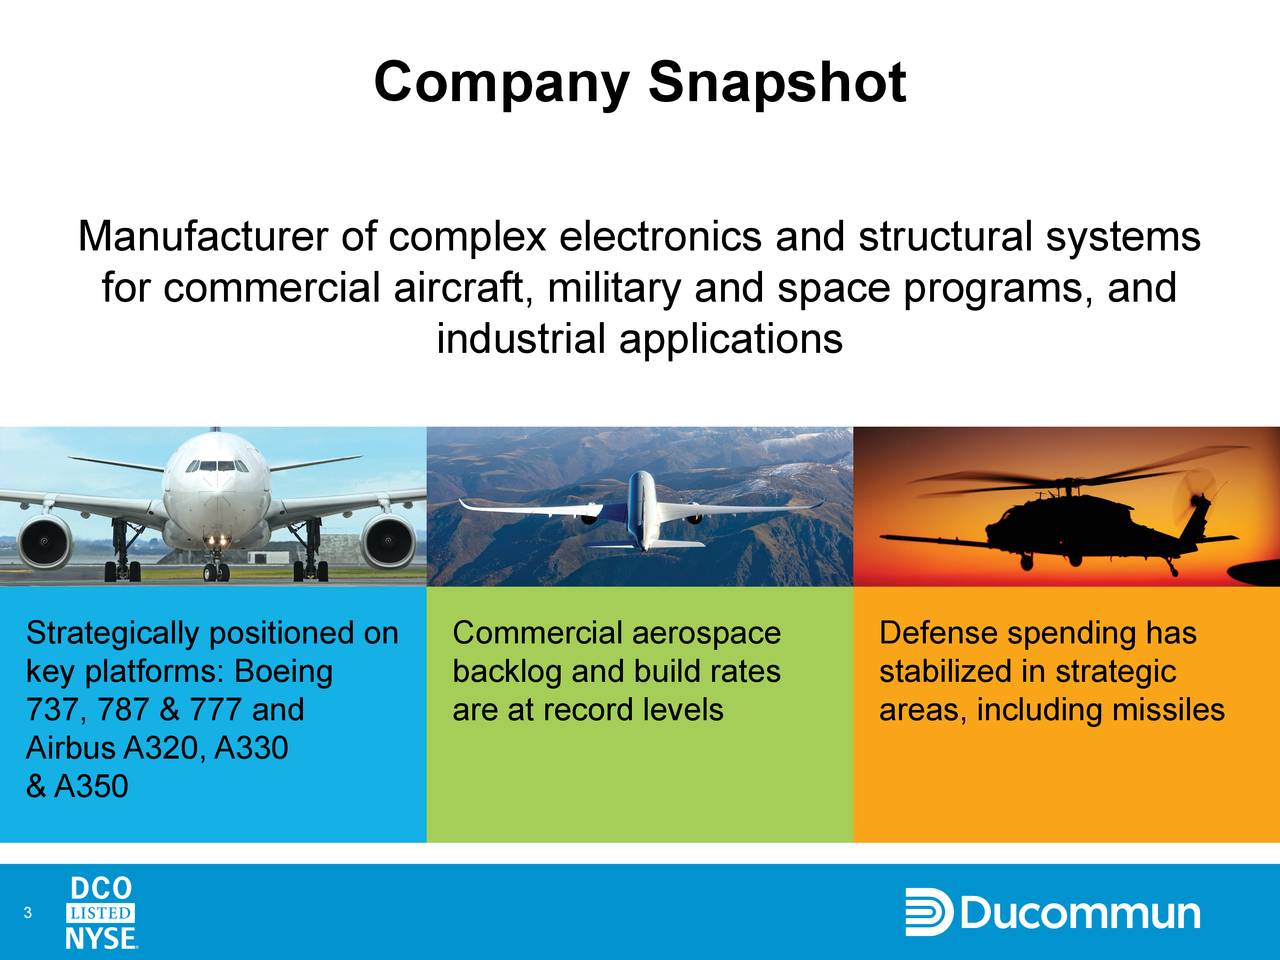 Manufacturer of complex electronics and structural systems for commercial aircraft, military and space programs, and industrial applications Strategically positioned onCommercial aerospace Defense spending has key platforms: Boeing backlog and build rates stabilized in strategic 737, 787 & 777 and are at record levels areas, including missiles Airbus A320, A330 & A350 3